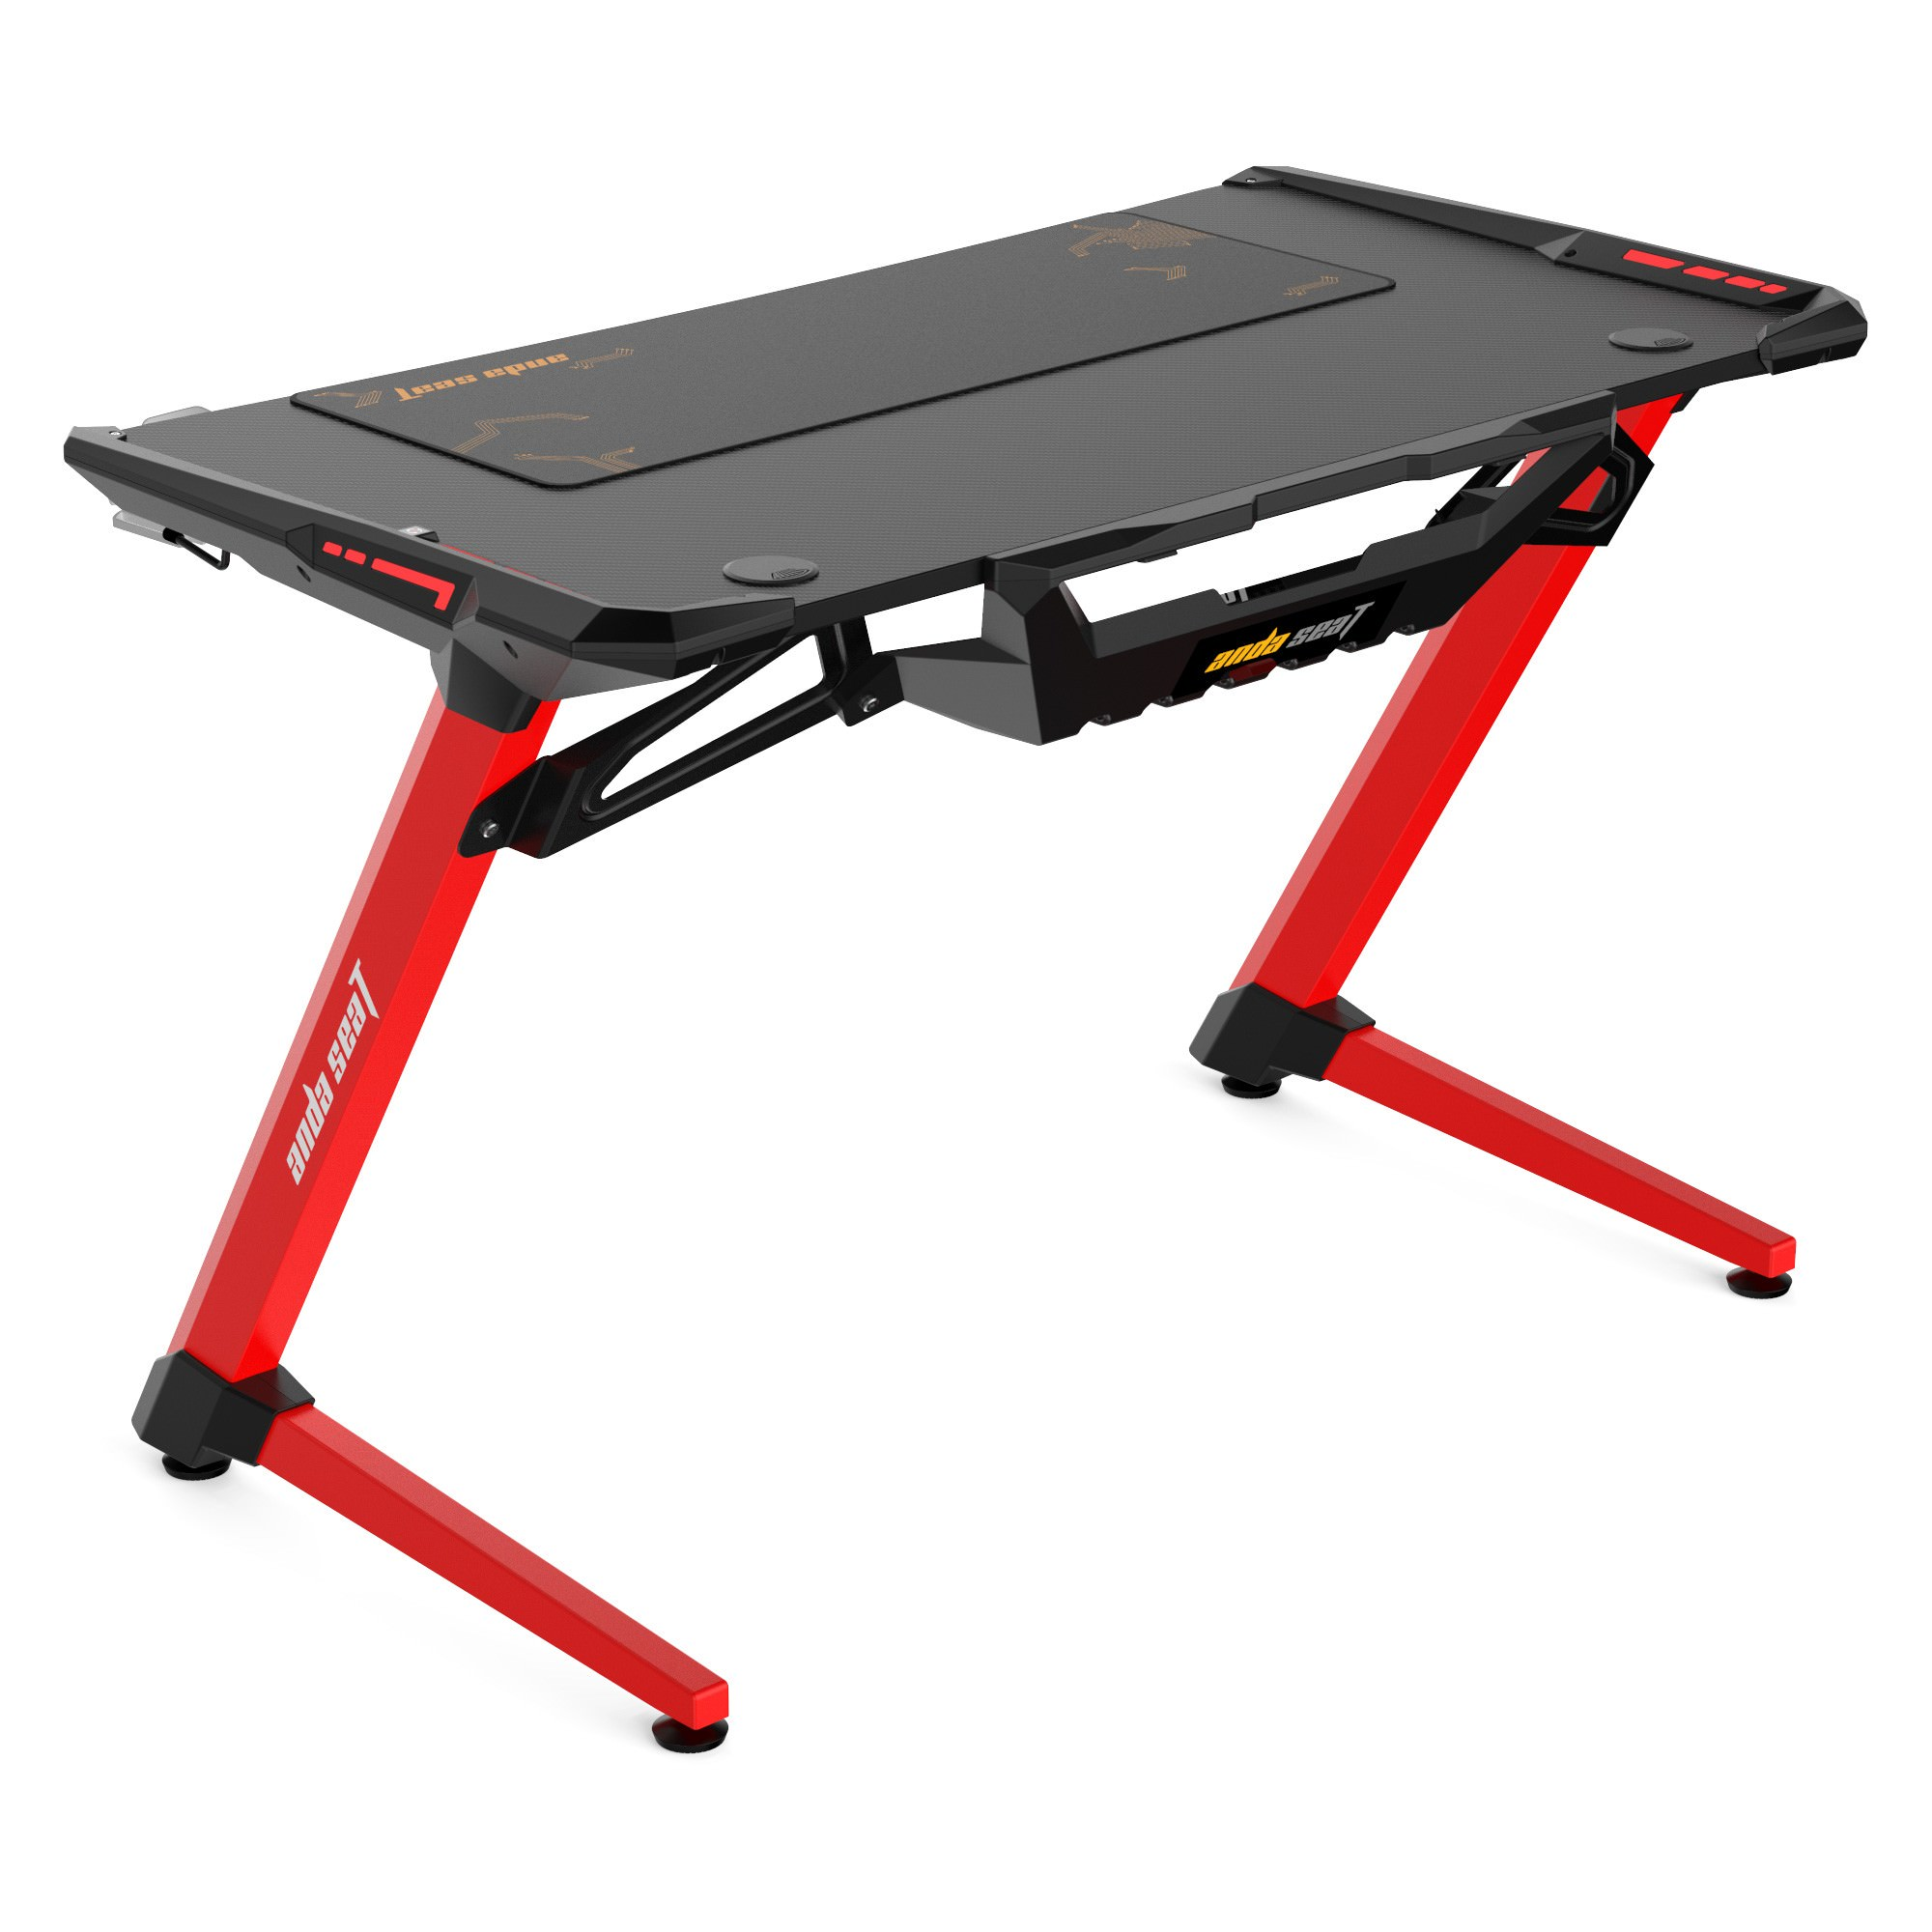 Anda Seat 1200-04 RGB Gaming Desk, 120cm, Red